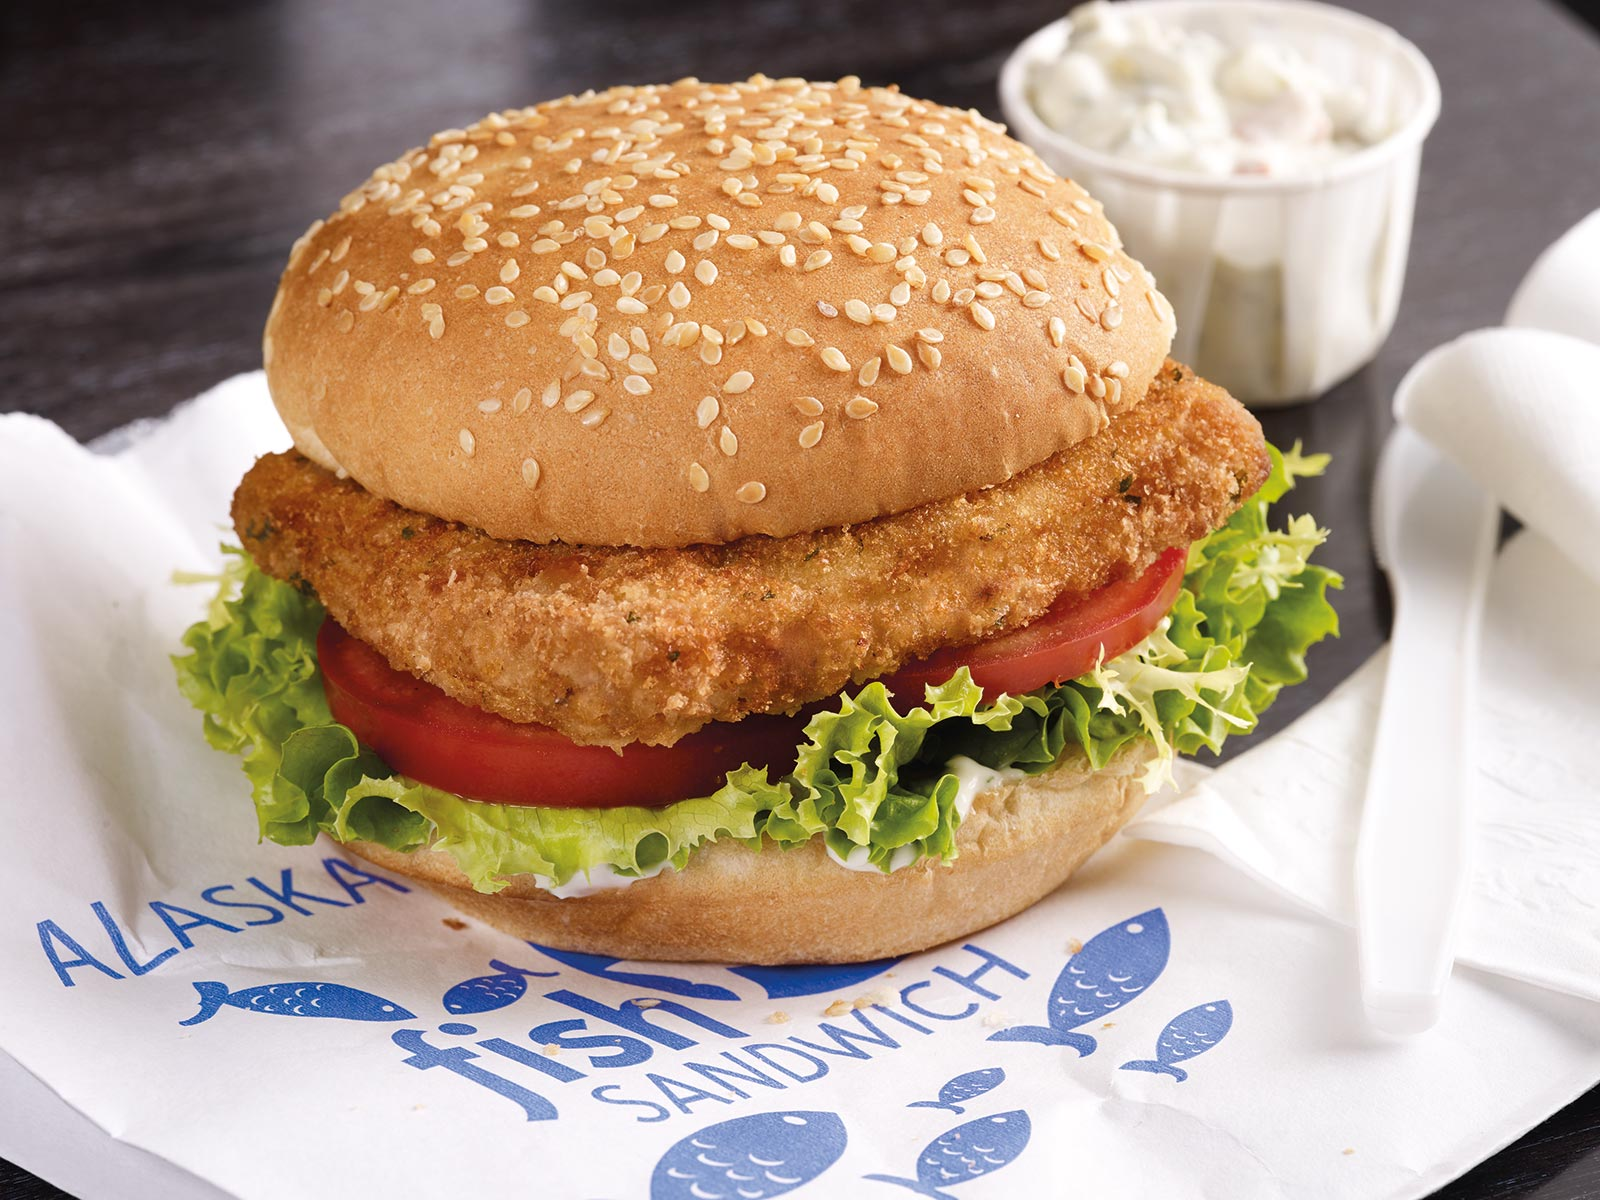 Wild Alaska Pollock Breaded Fish Sandwich 4 oz Oven Ready (with bags) 415642